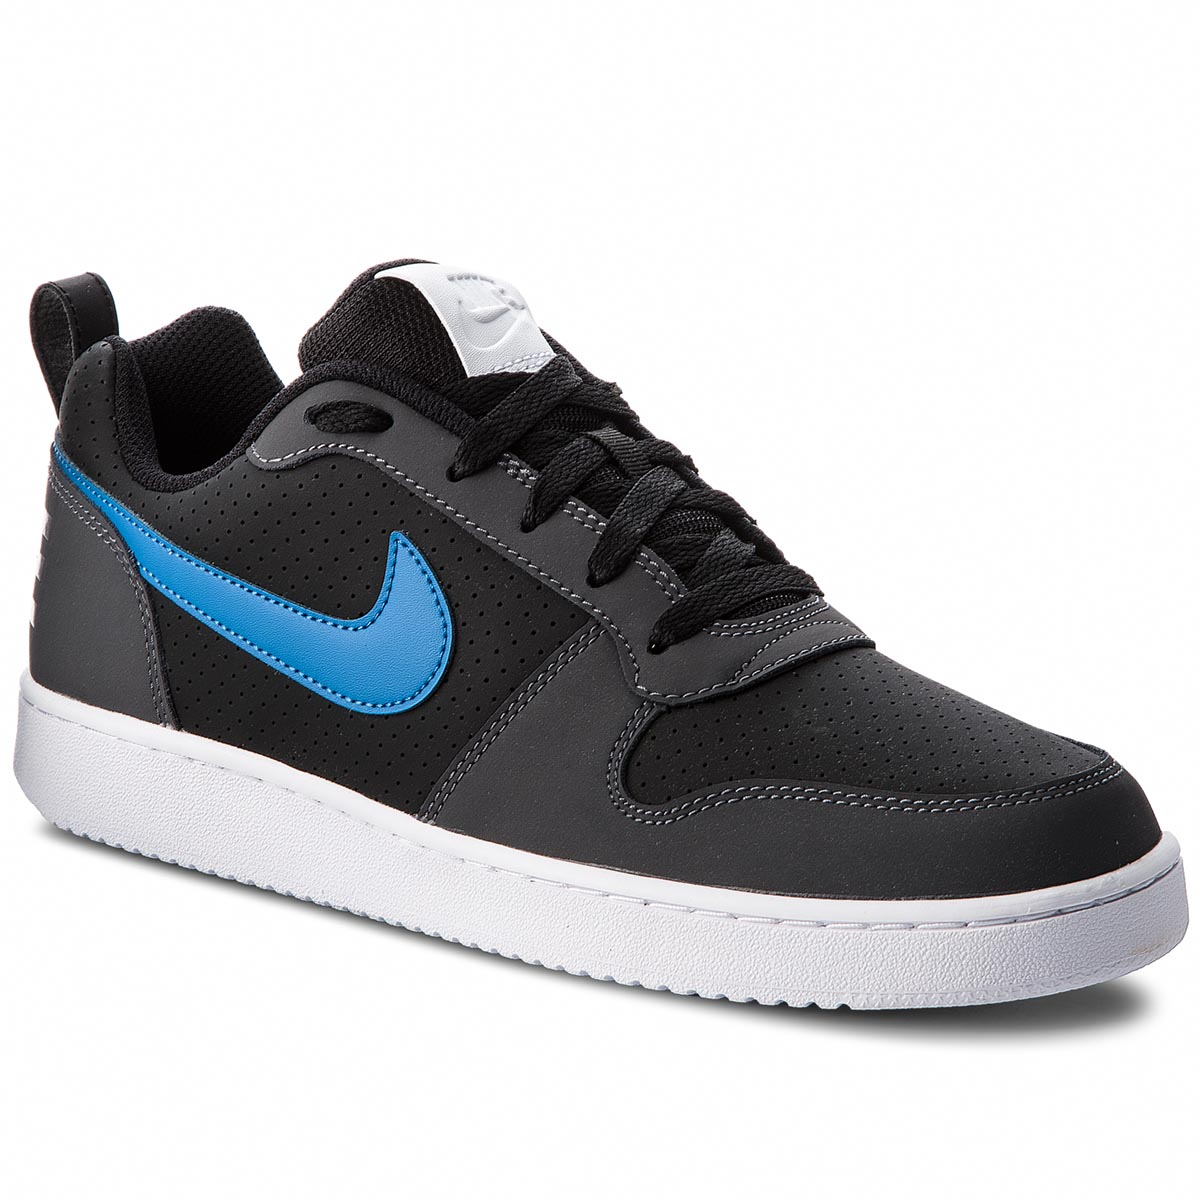 Pantofi NIKE - Court Borough Low 838937 006 Black/Blue Nebula/Dark Grey